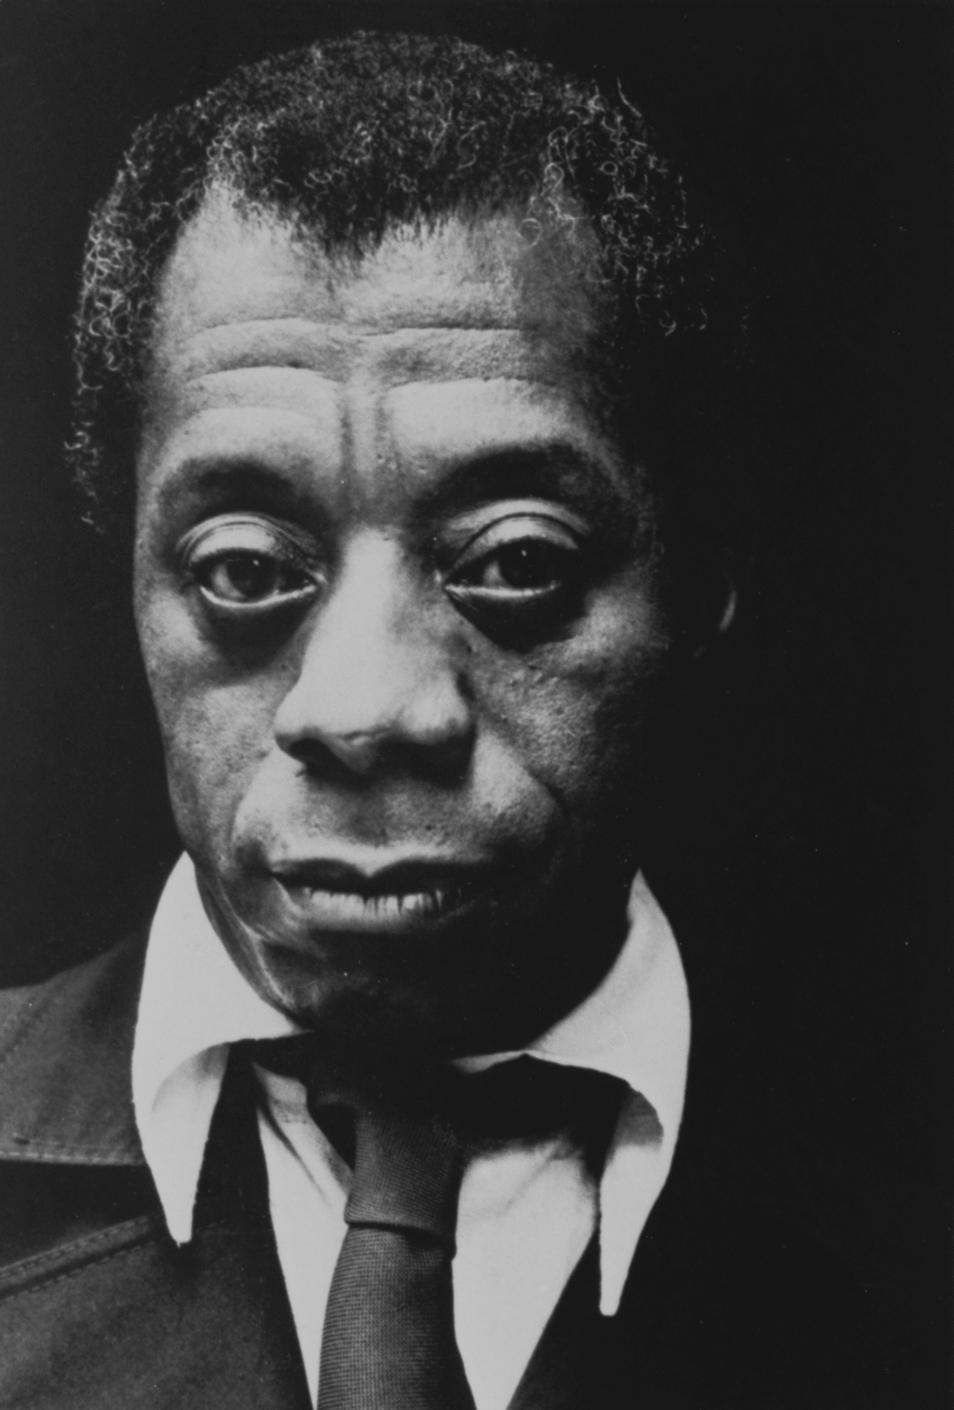 James Baldwin, novelist, essayist, playwright, cultural theorist